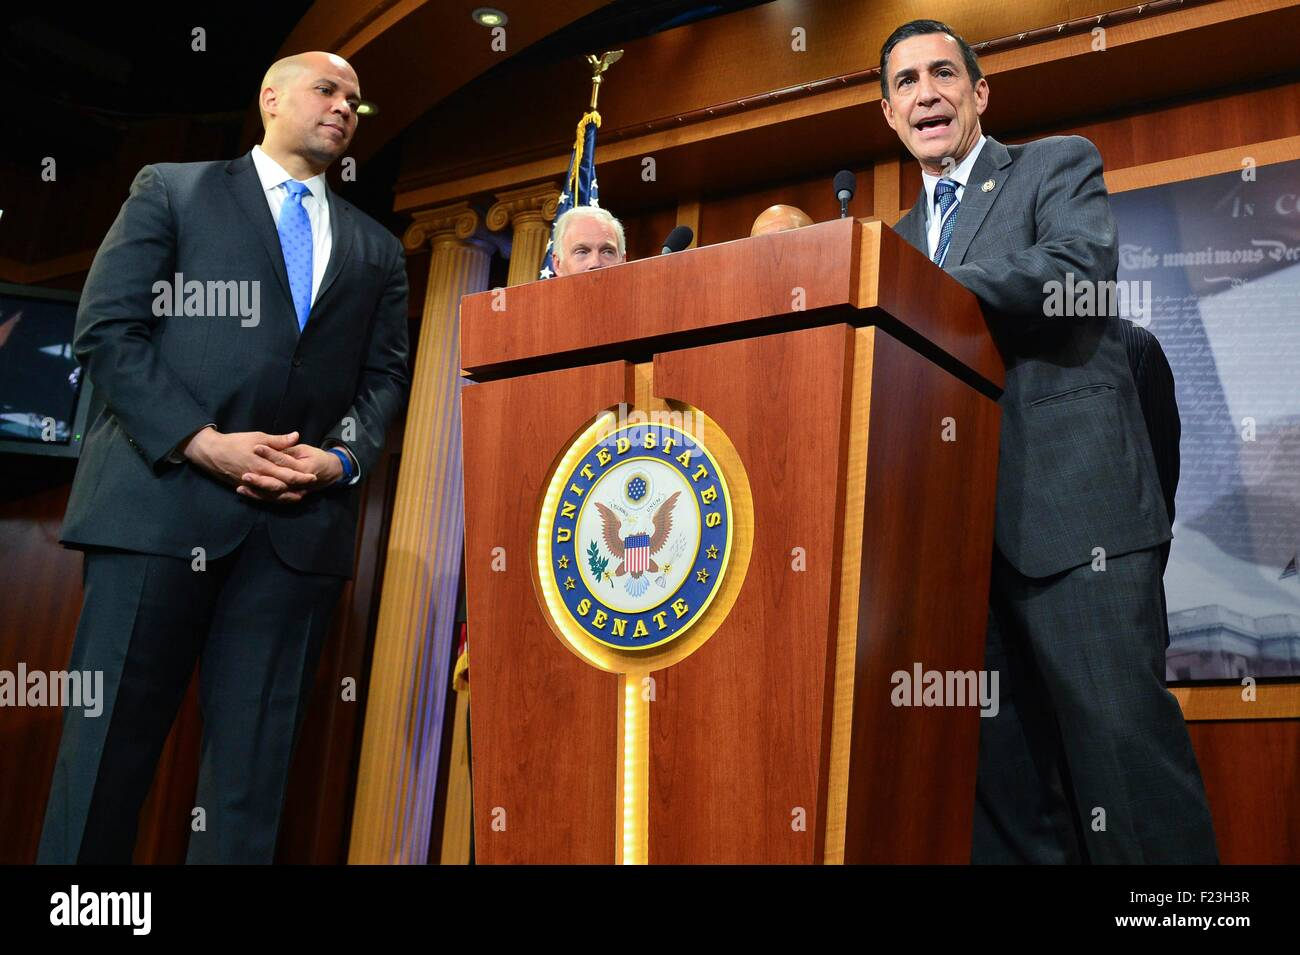 Washington DC, USA. 10th September, 2015. U.S. Congressmen Rep. Darrell Issa joins a bipartisan group of legislators - Stock Image